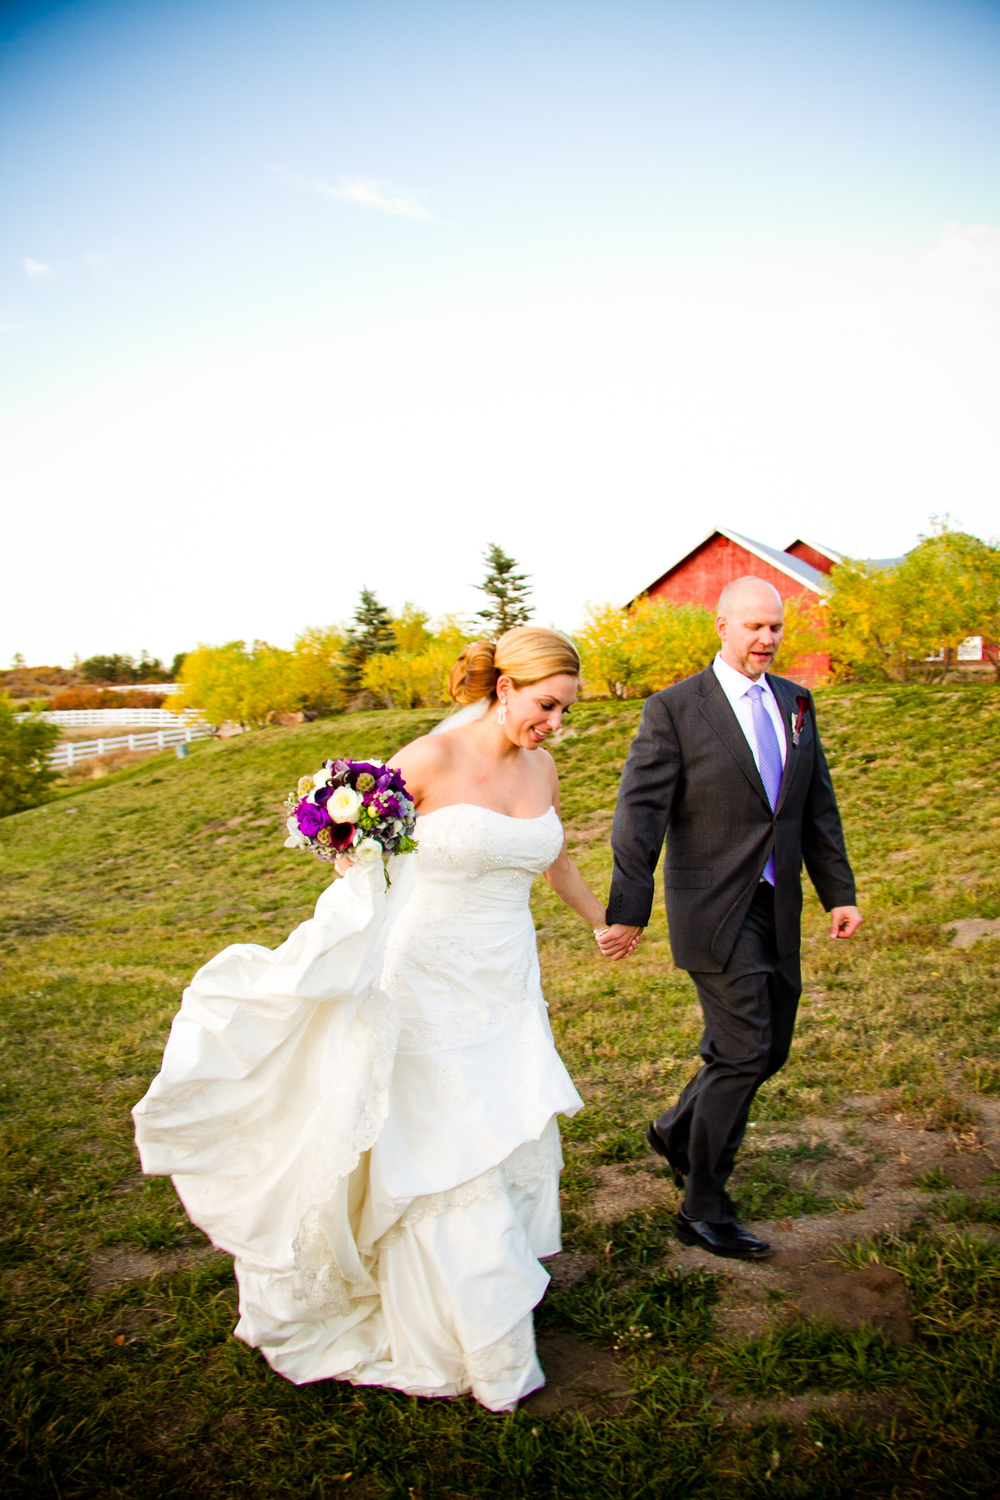 Crooked_Willow_Farms__Sedalia_Wedding_040.JPG